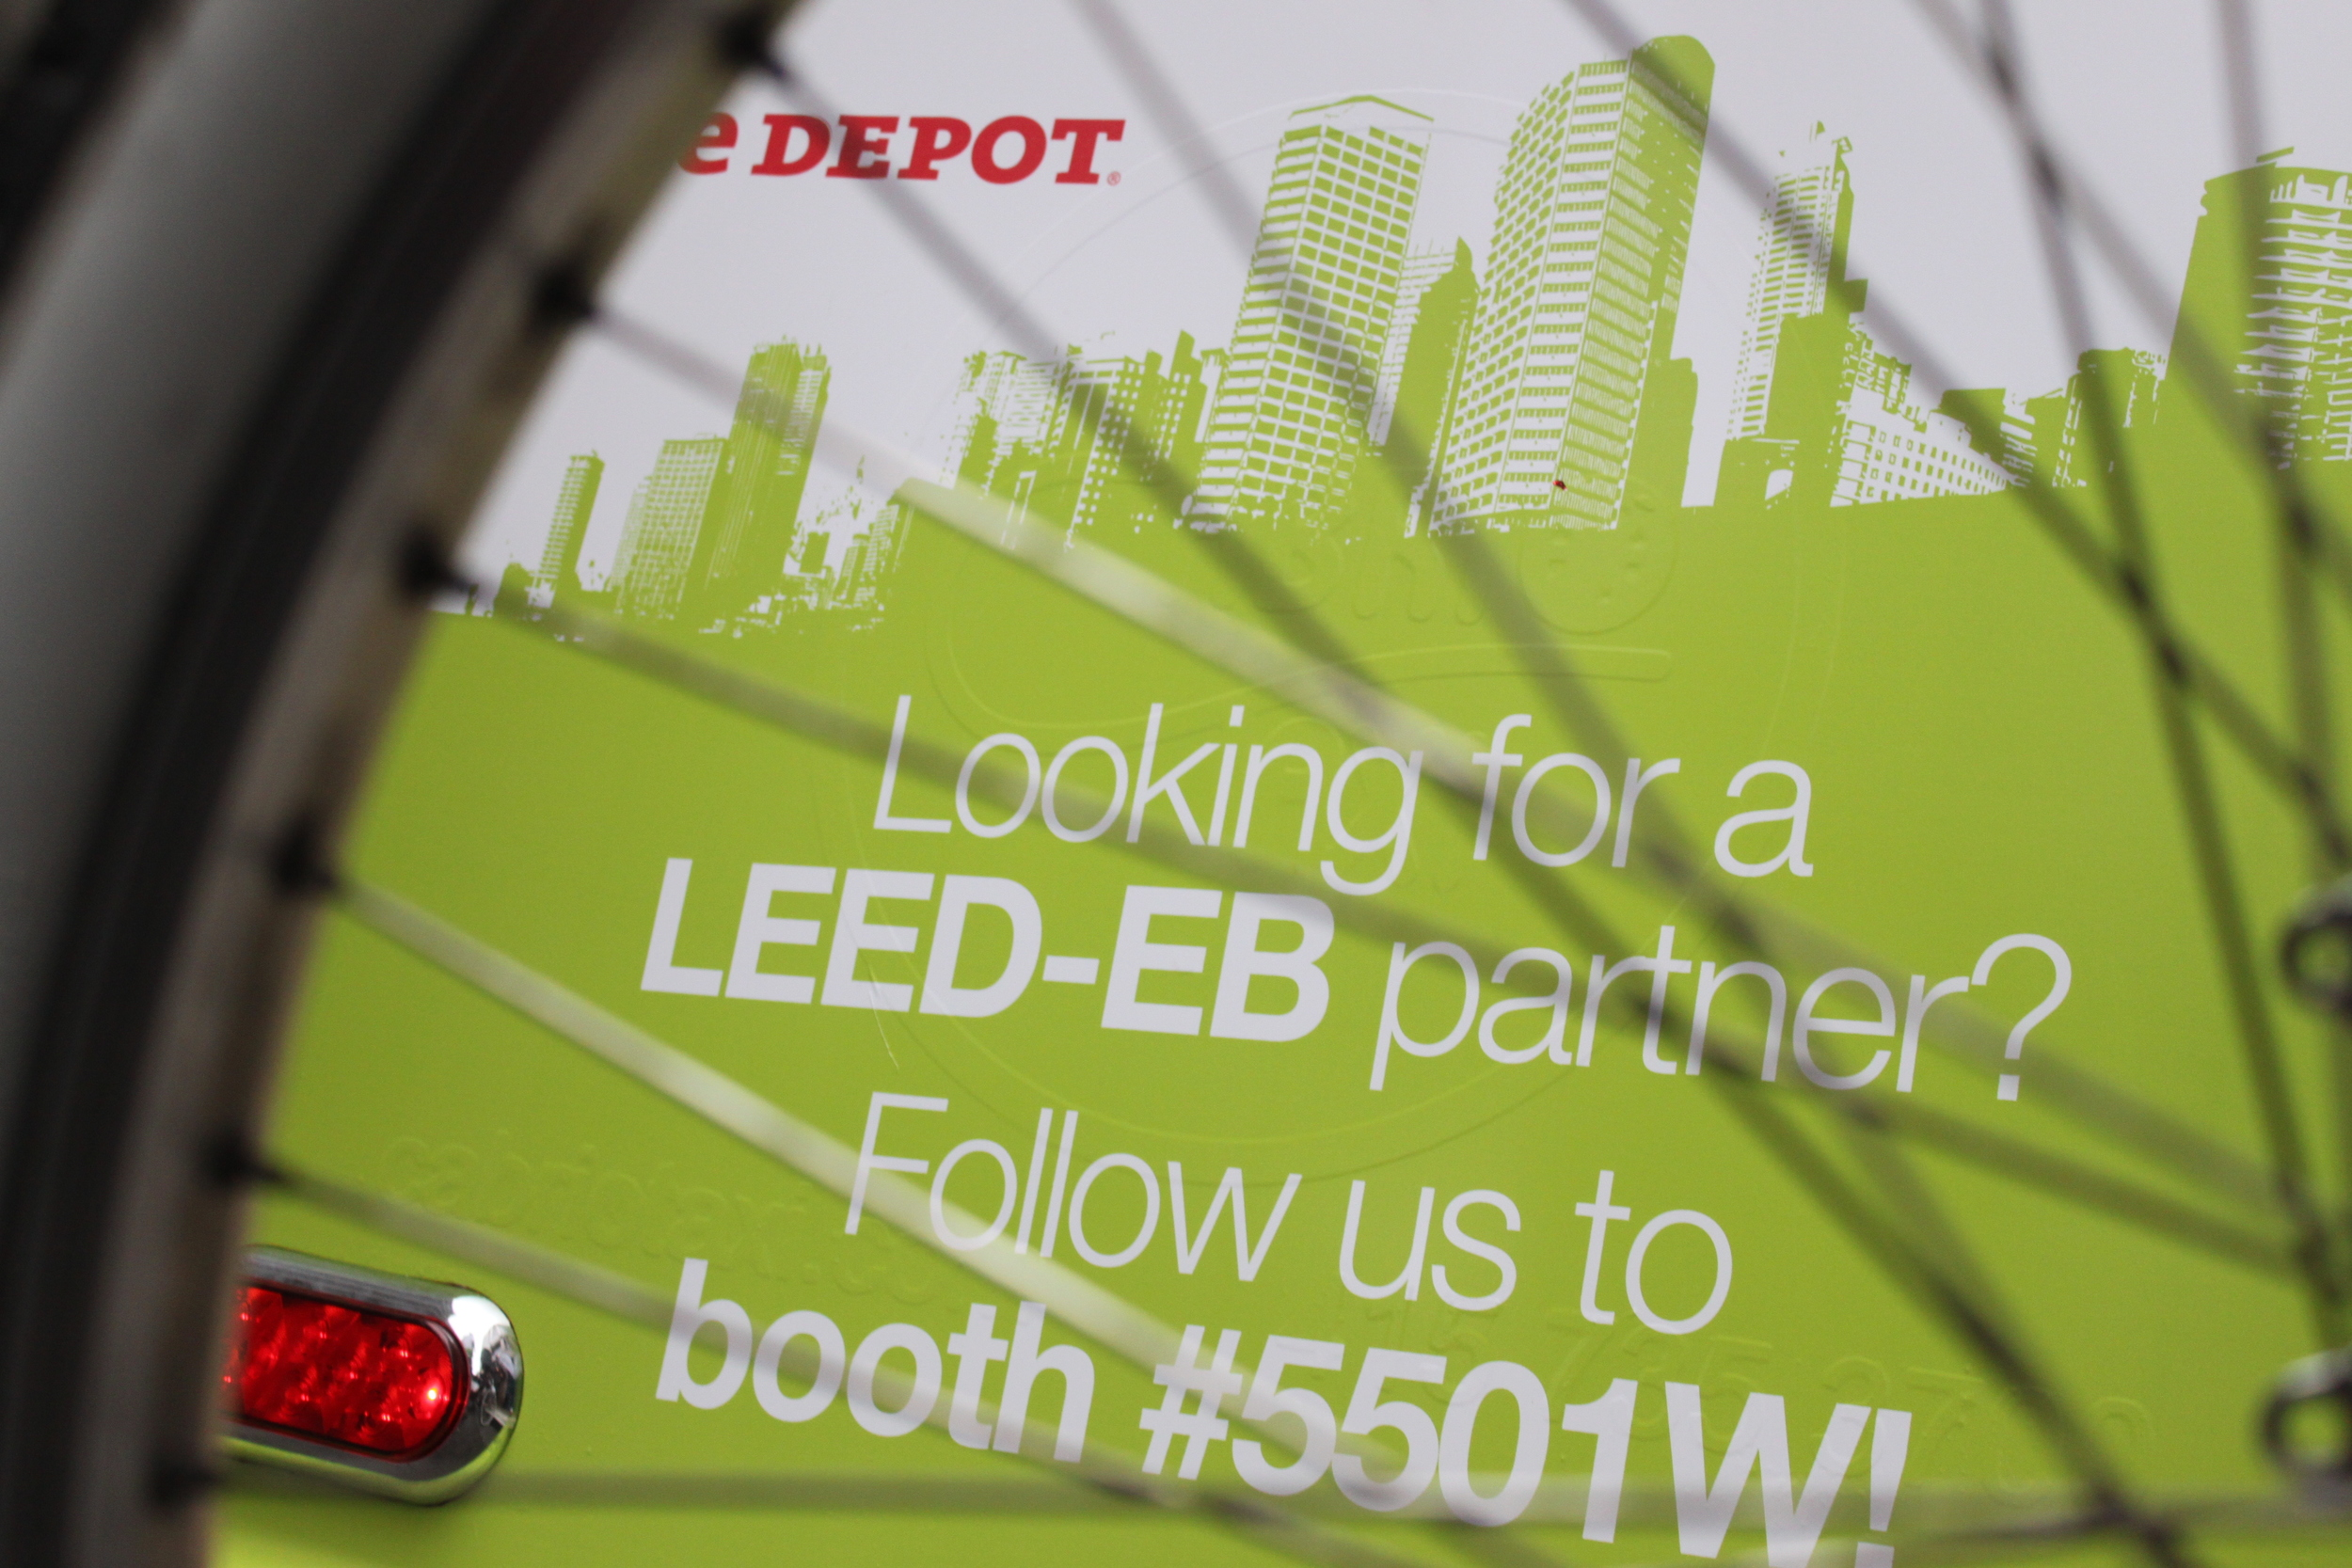 Looking for a LEED-EB Partner?